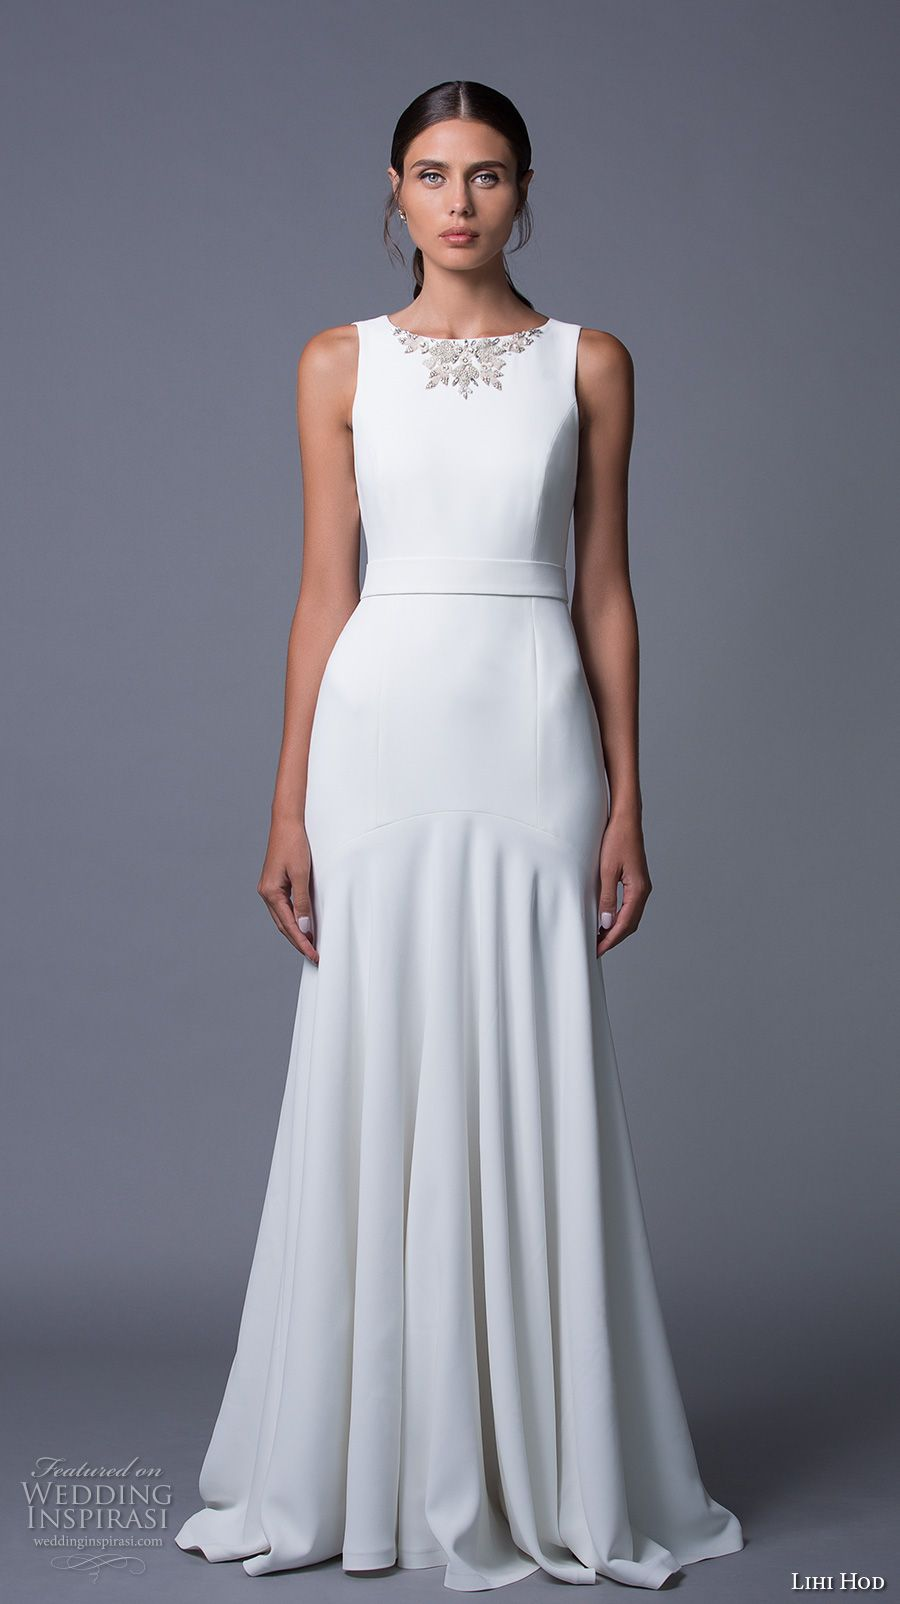 Simple white wedding dresses  Lihi Hod  Wedding Dresses u ucMaison des Rêvesud Bridal Collection